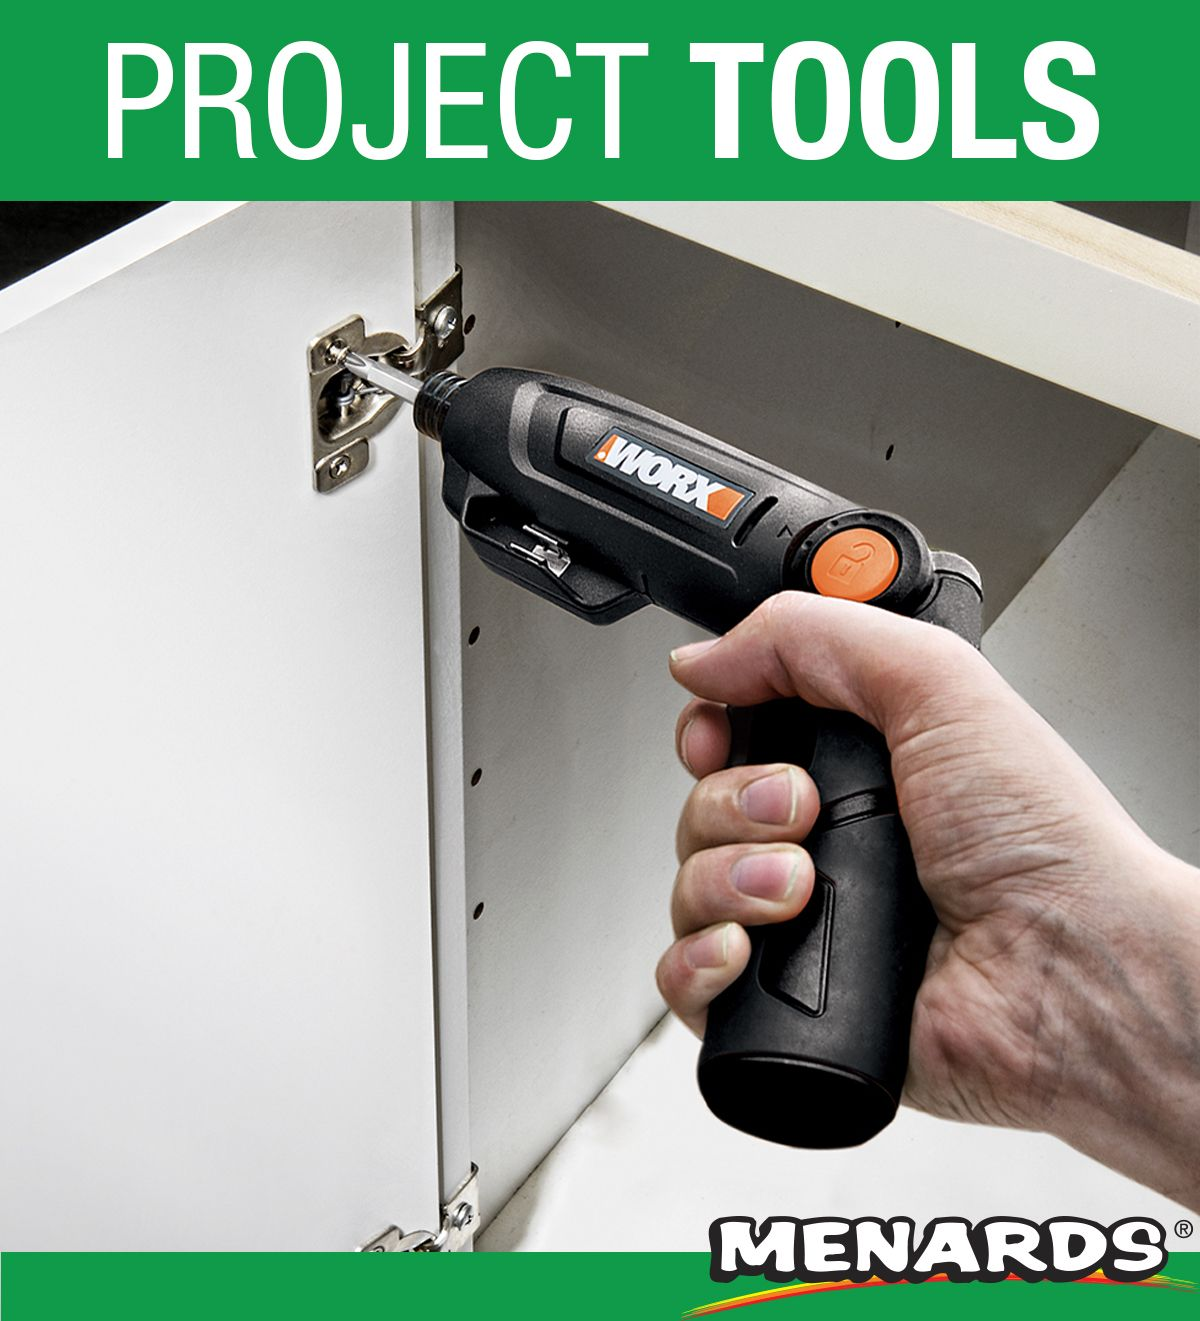 This Tool Is Perfect For Small Projects The Worx Cordless Screwdriver Has A Three Position Handle Lets You Drive At A Tools Power Drills Cordless Screwdrivers